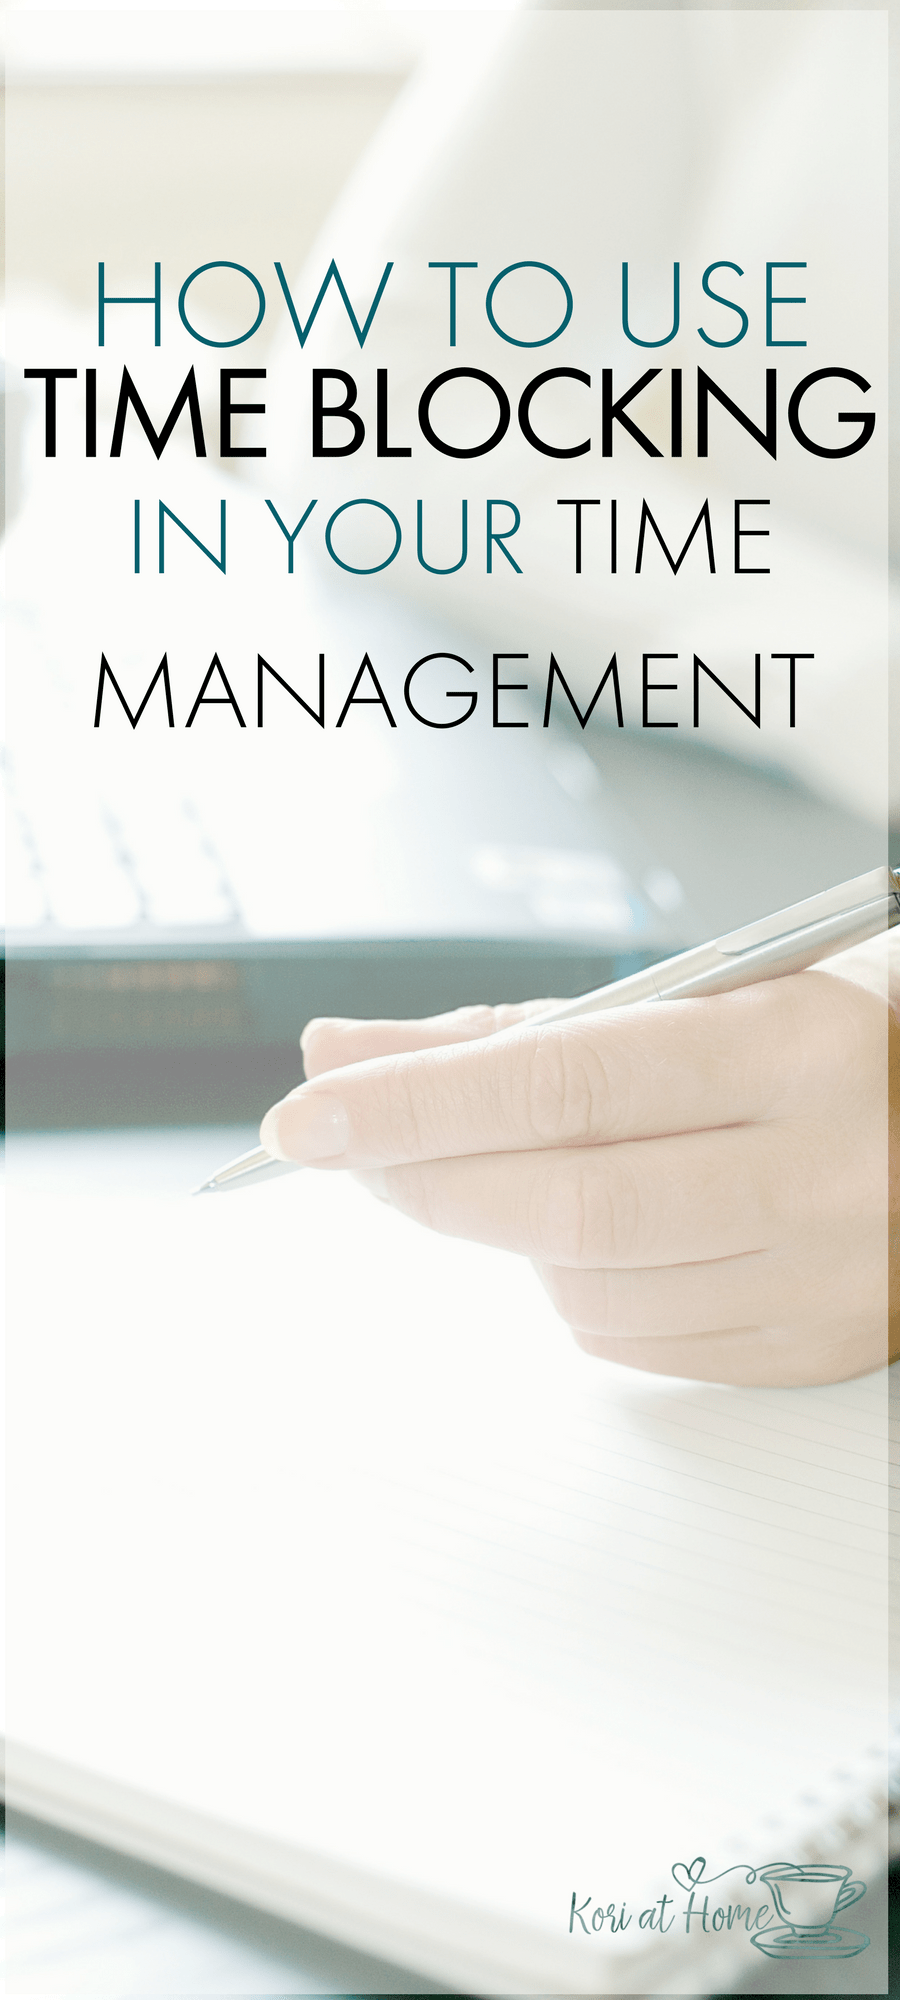 Time blocking has changed my time management strategy for the better. Here's how I use time blocking as a work at home mom.